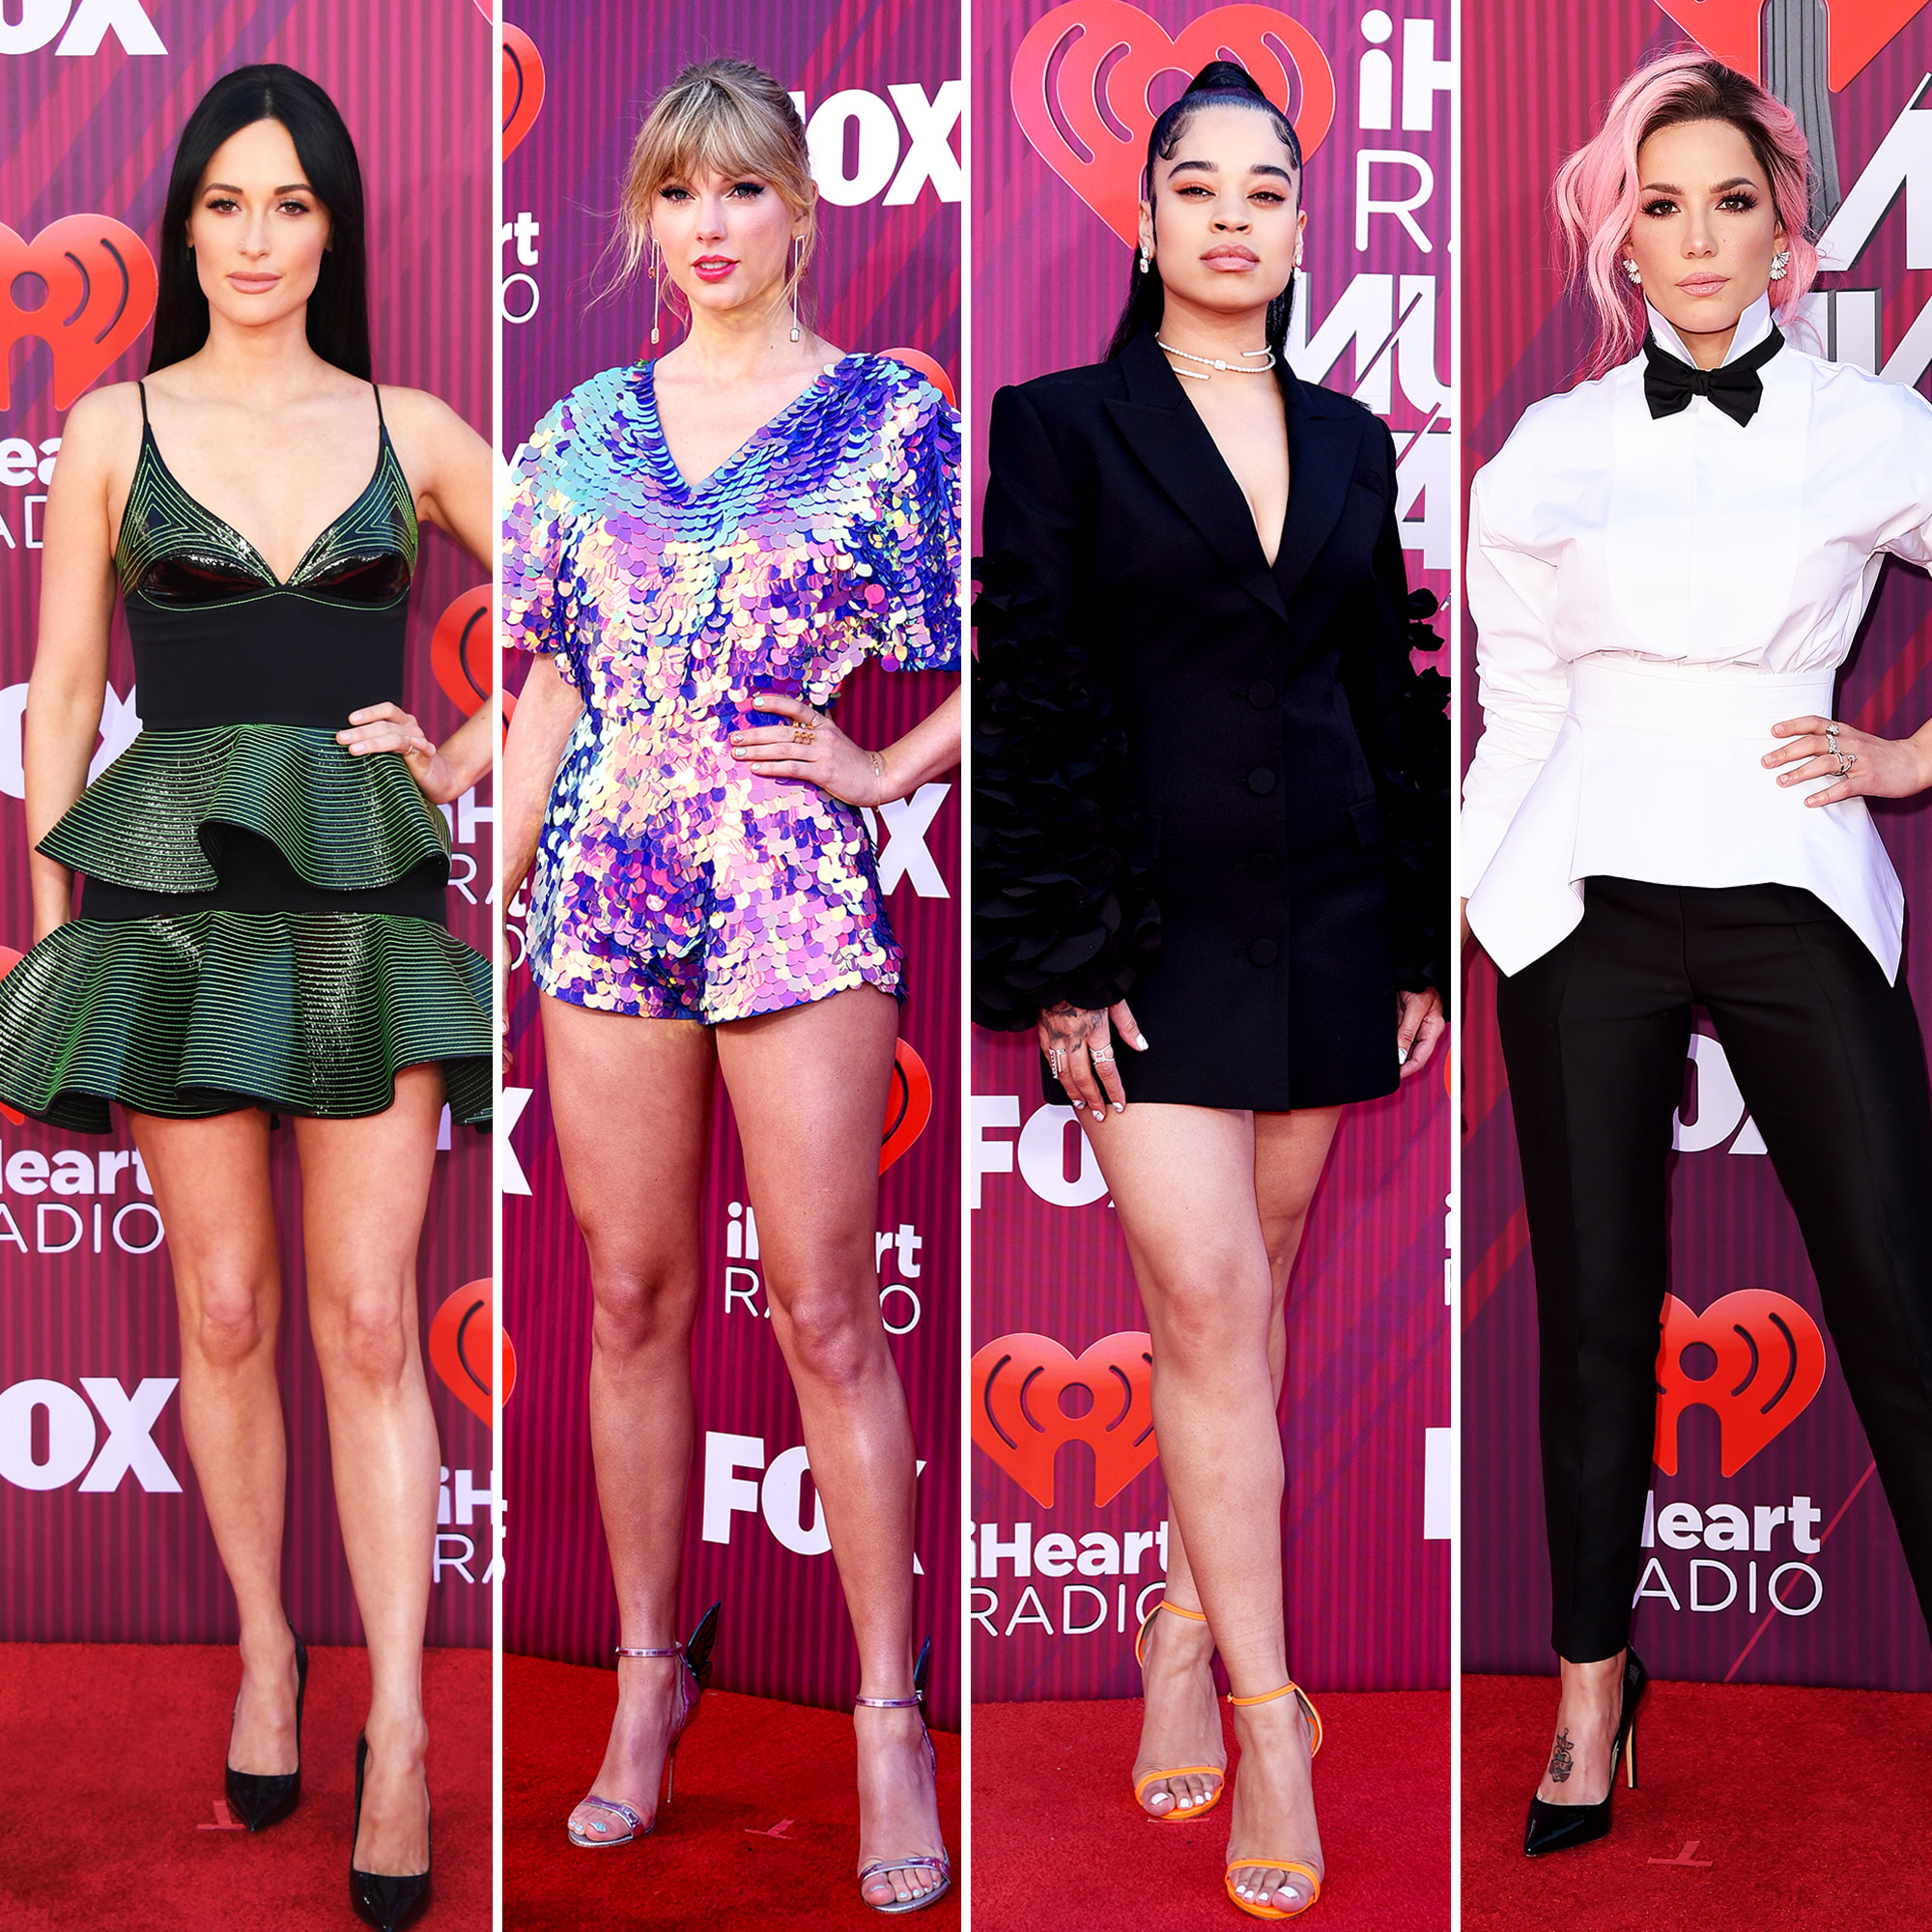 Kacey Musgraves Taylor Swift Ella Mai Halsey See What the Stars Wore to the iHeart Radio Music Awards 2019 - Kacey Musgraves, Taylor Swift, Ella Mai and Halsey